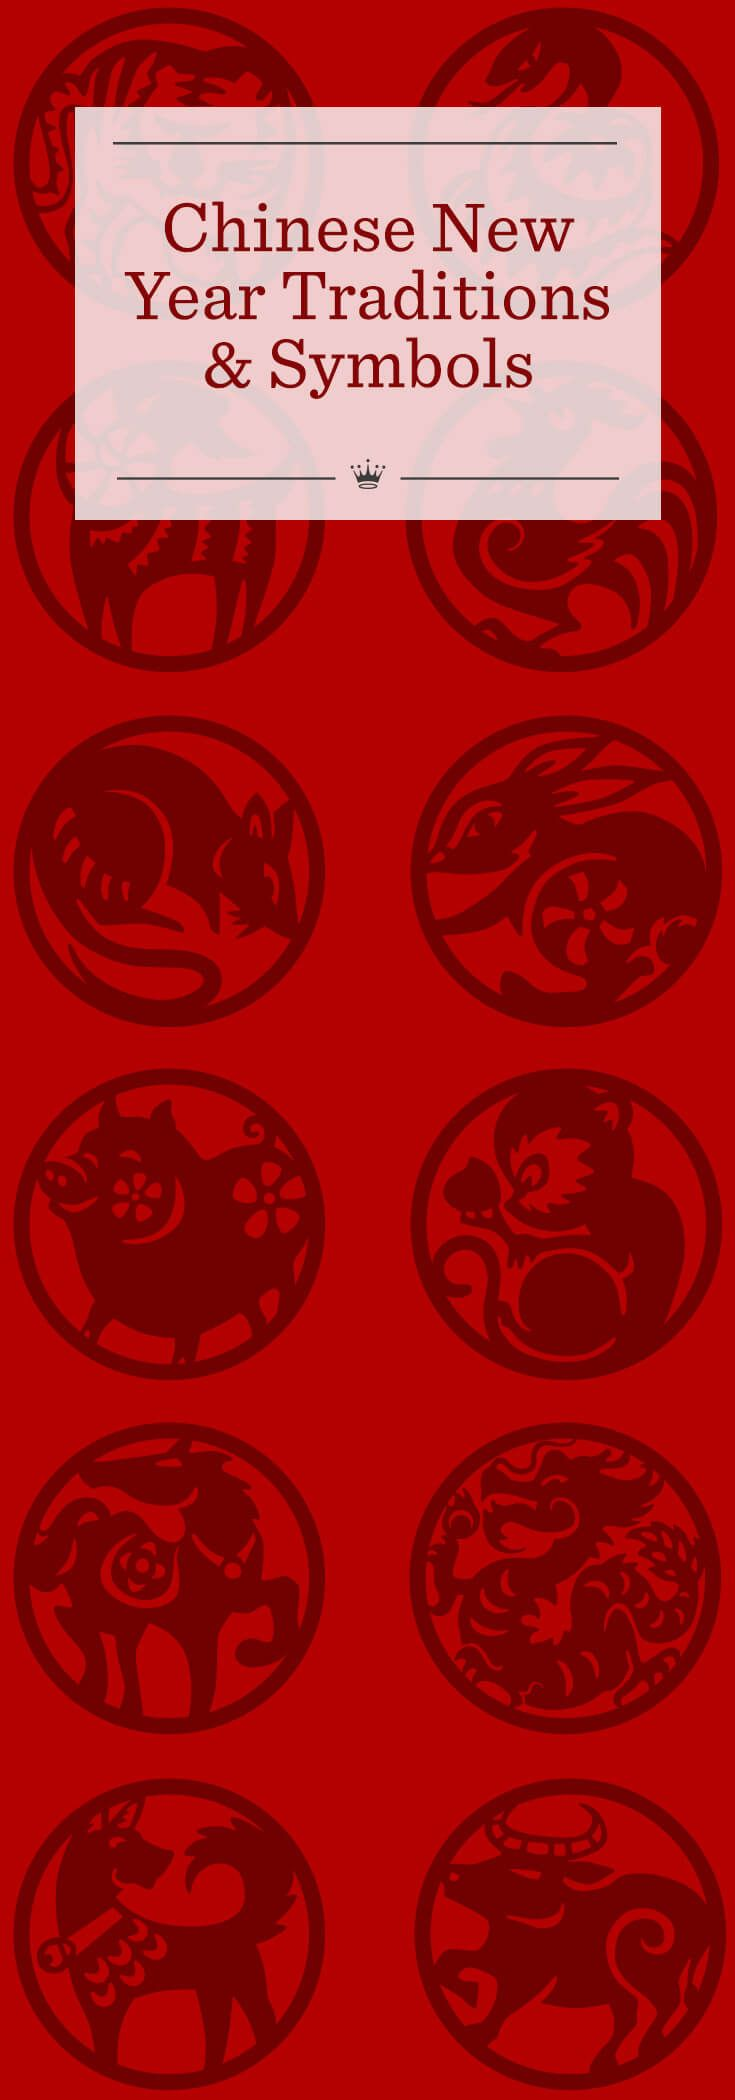 Chinese New Year | Learn about the Chinese New Year celebration and find your Chinese zodiac sign.